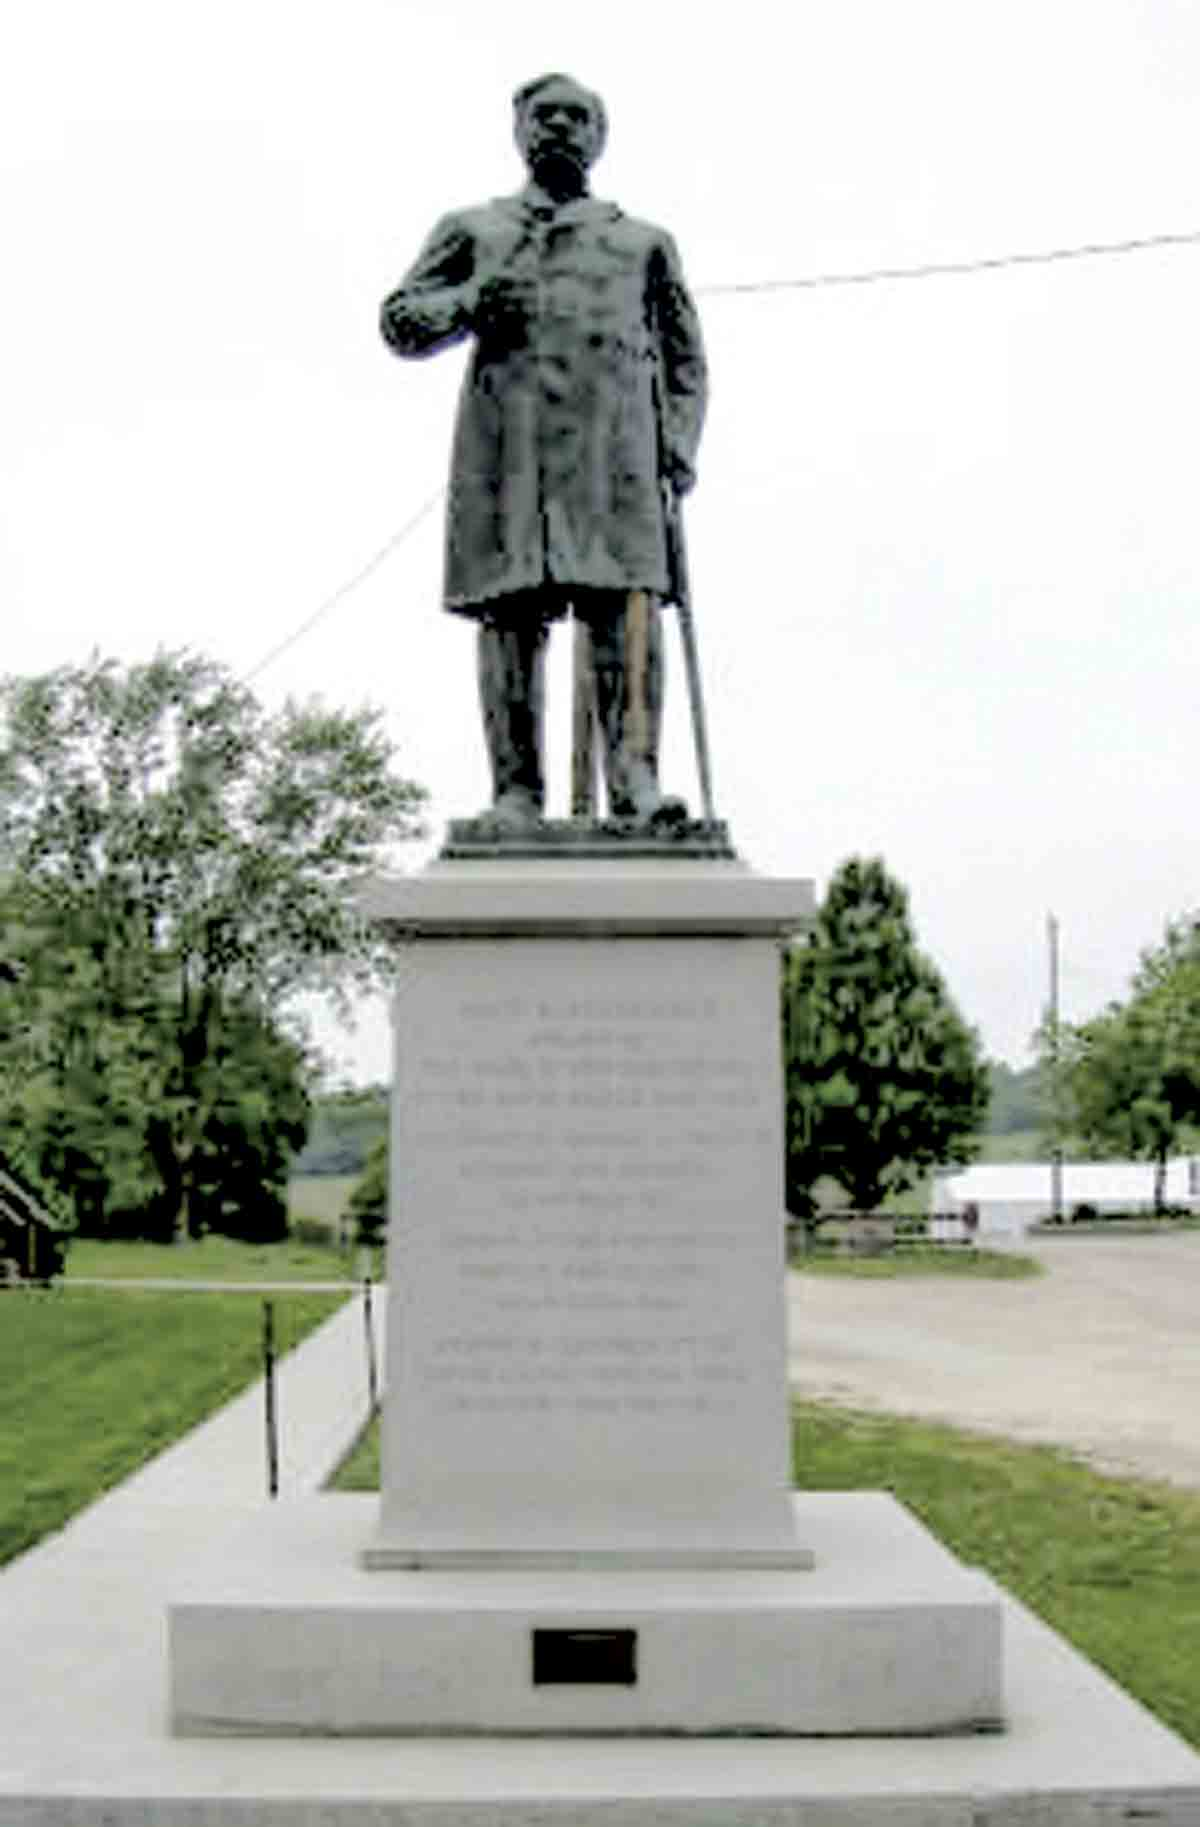 Erected in 1903, the historic Henderson statue depicts David B. Henderson who once served Iowa's 3rd congressional district in the U.S. House, and later served as the house speaker.(submitted photo)Nationally Registered Historic Places of Clermont: Senator...